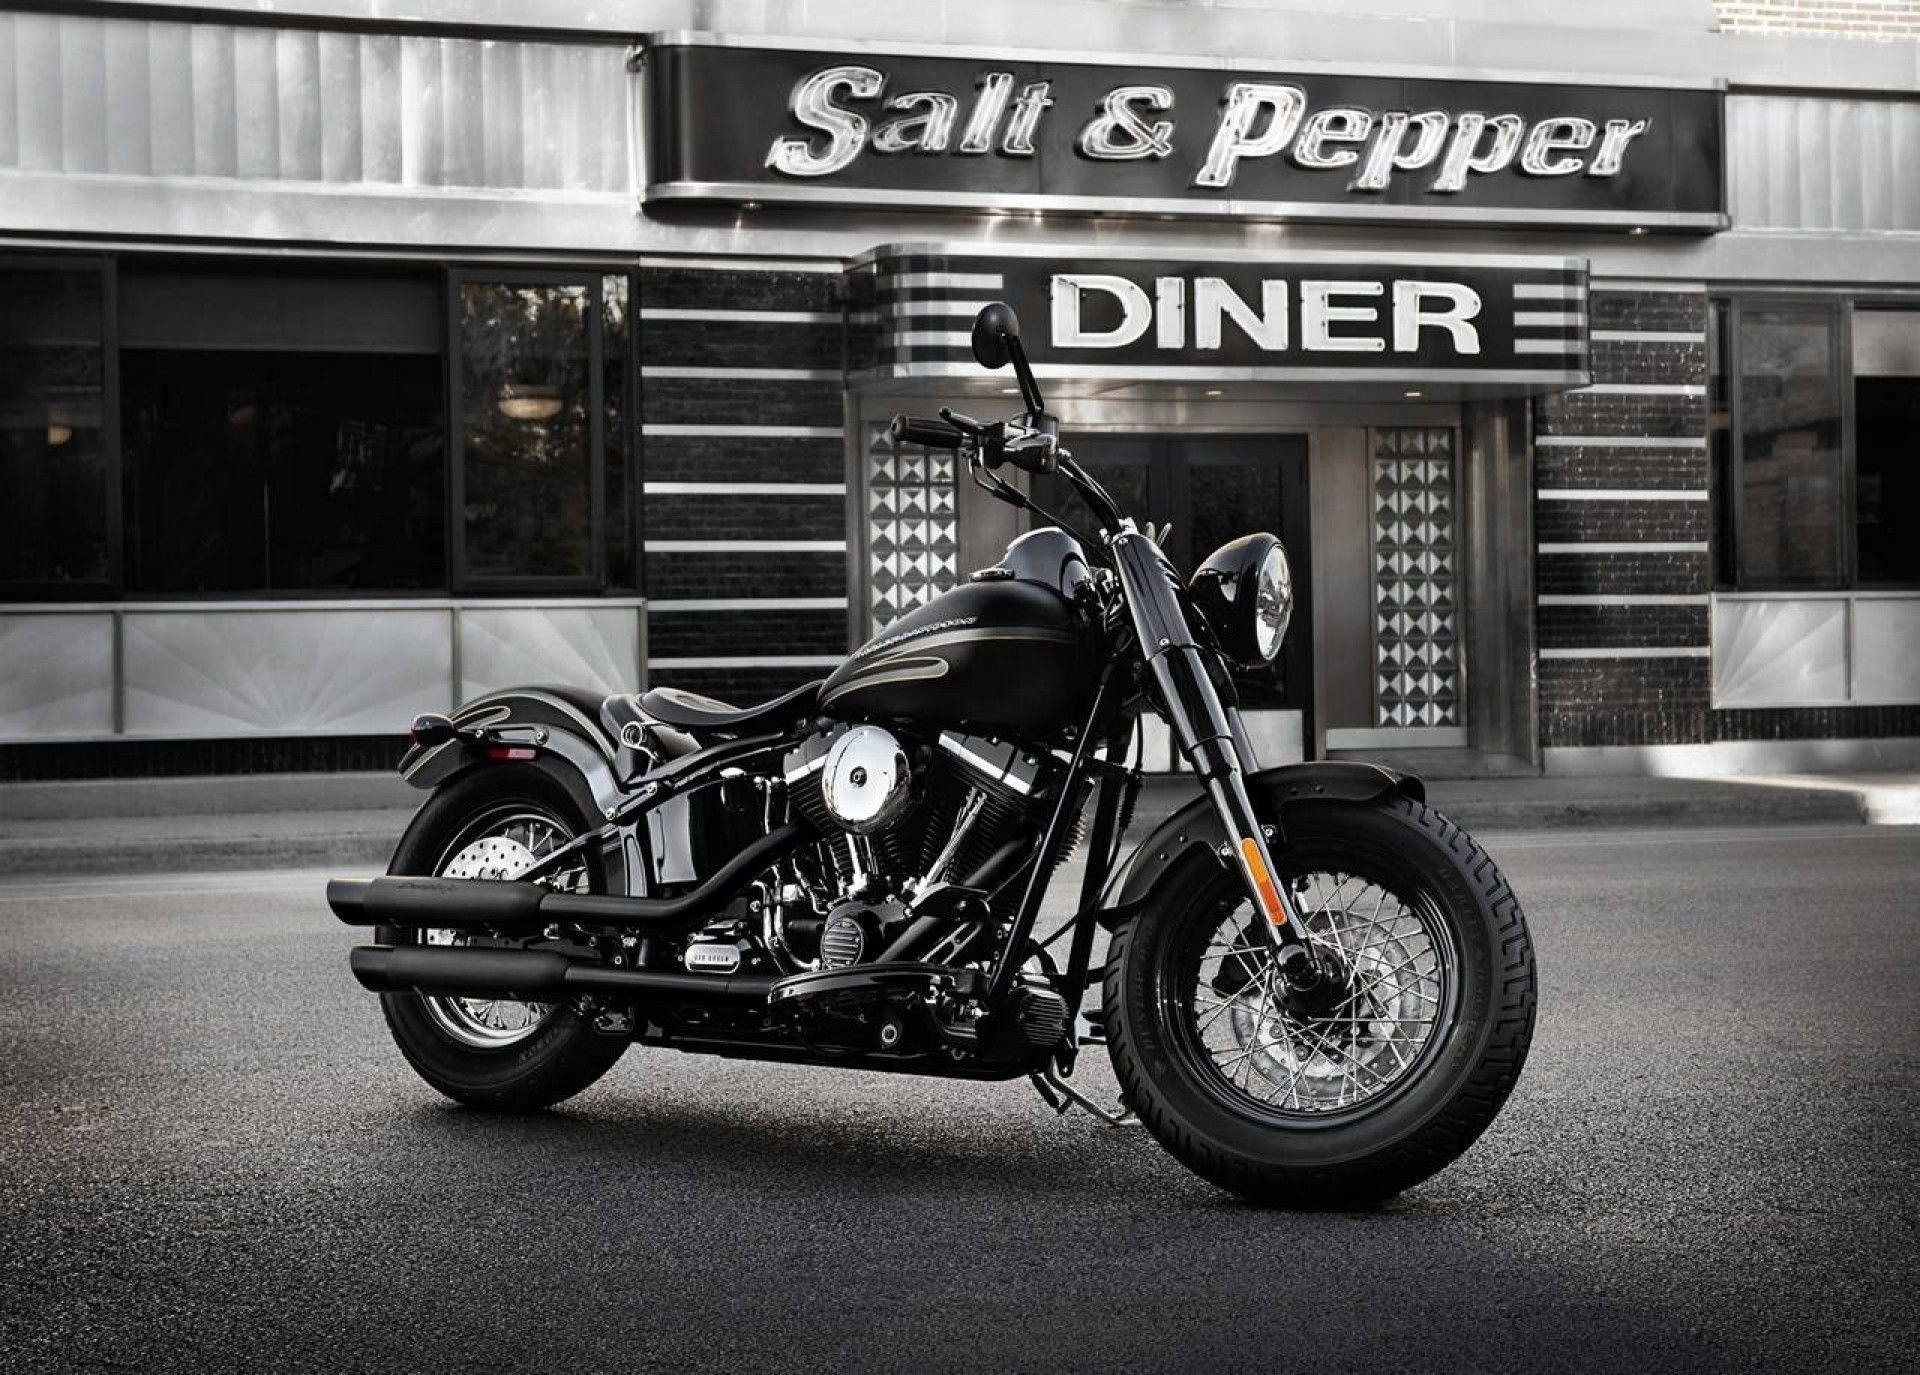 Black Harley Davidson Wallpaper 4241 Full HD Wallpaper Desktop ...